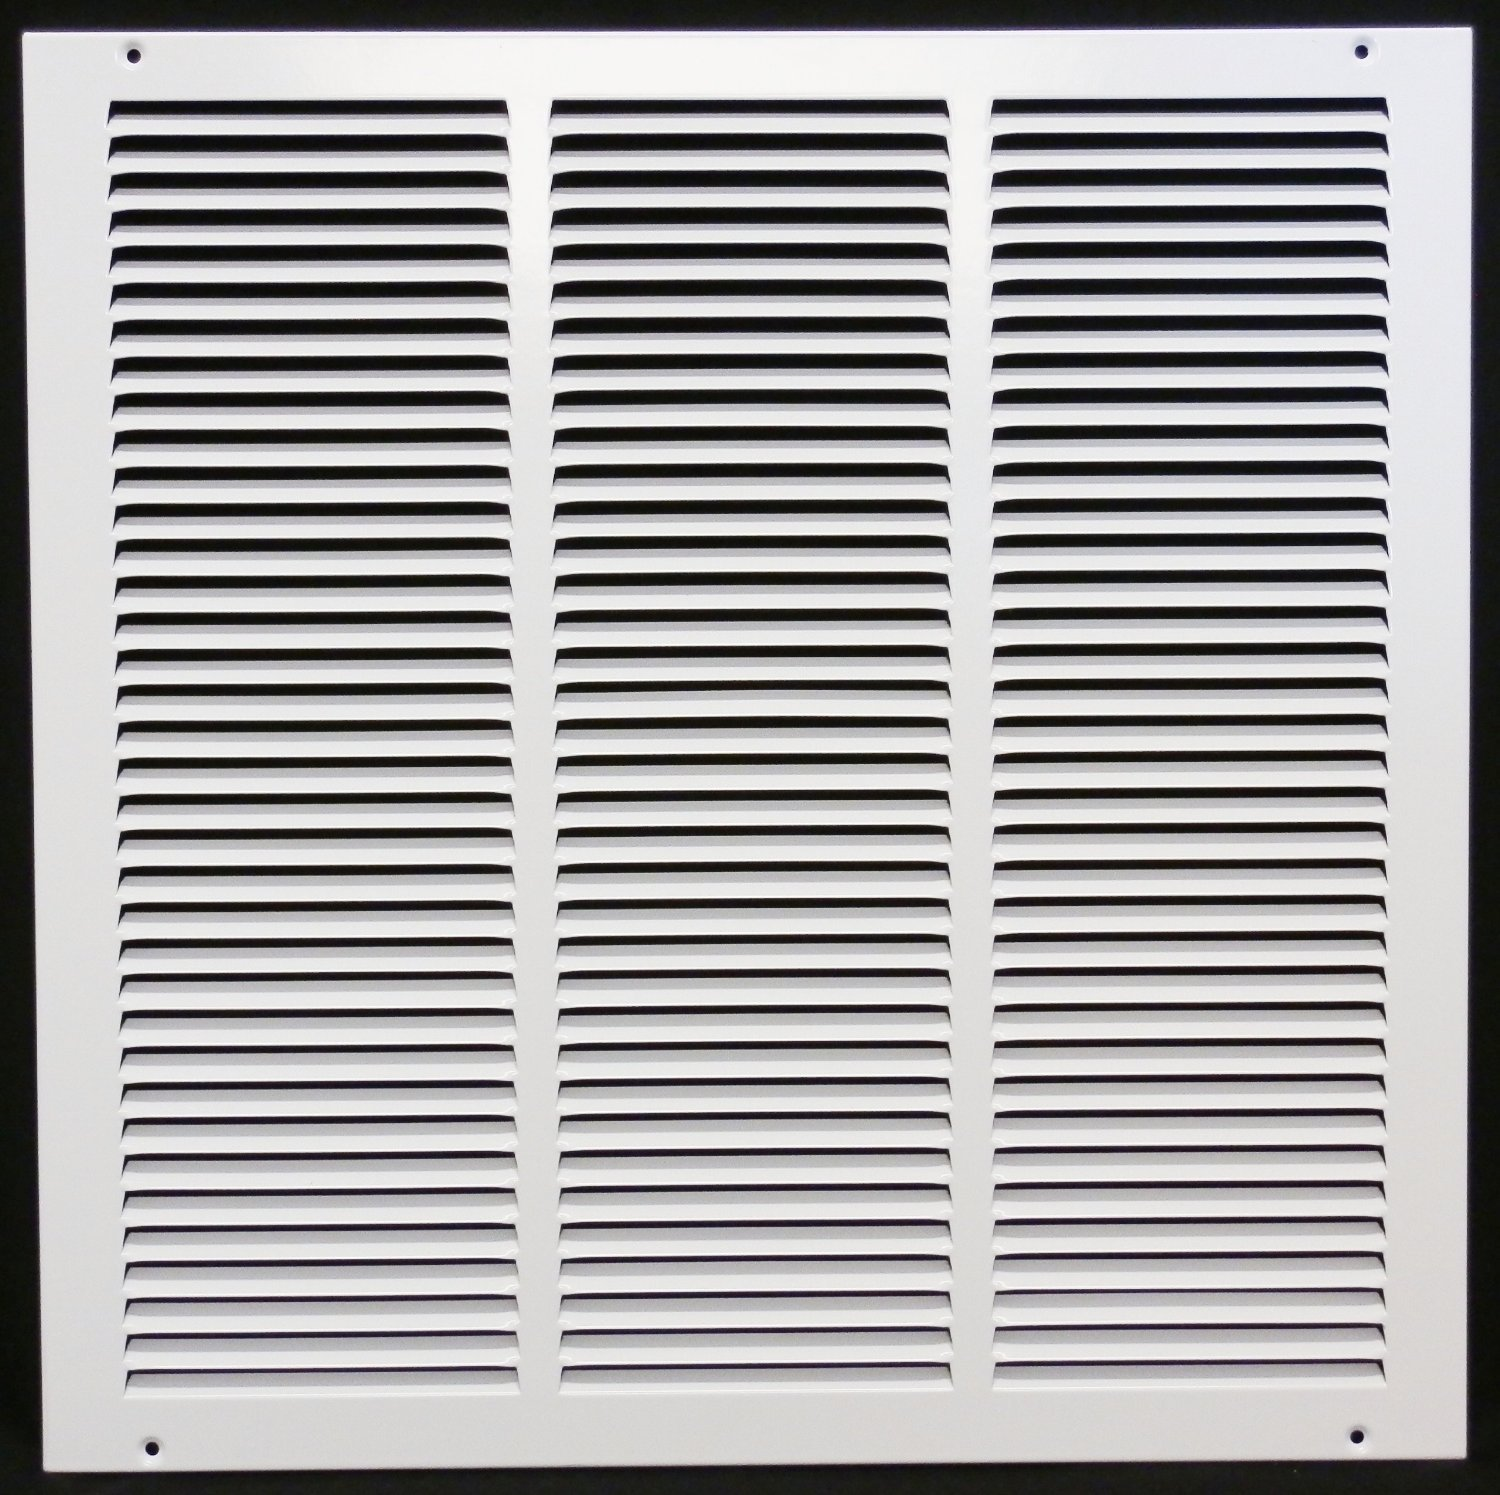 18''w X 18''h Steel Return Air Grilles - Sidewall and Cieling - HVAC DUCT COVER - White [Outer Dimensions: 19.75''w X 19.75''h]